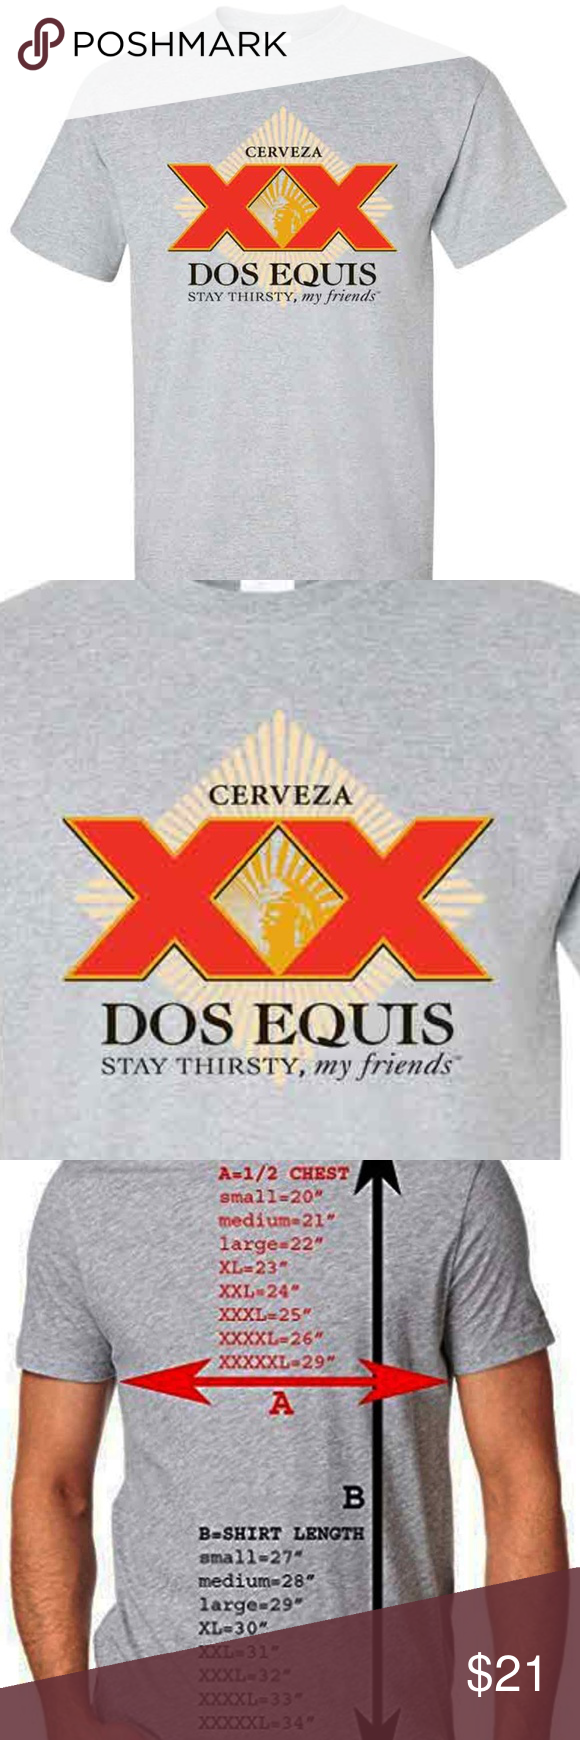 Cerveza Dos Equis Stay Thirsty Men S Gray T Shirt Colorful Shirts Shirts Clothes Design